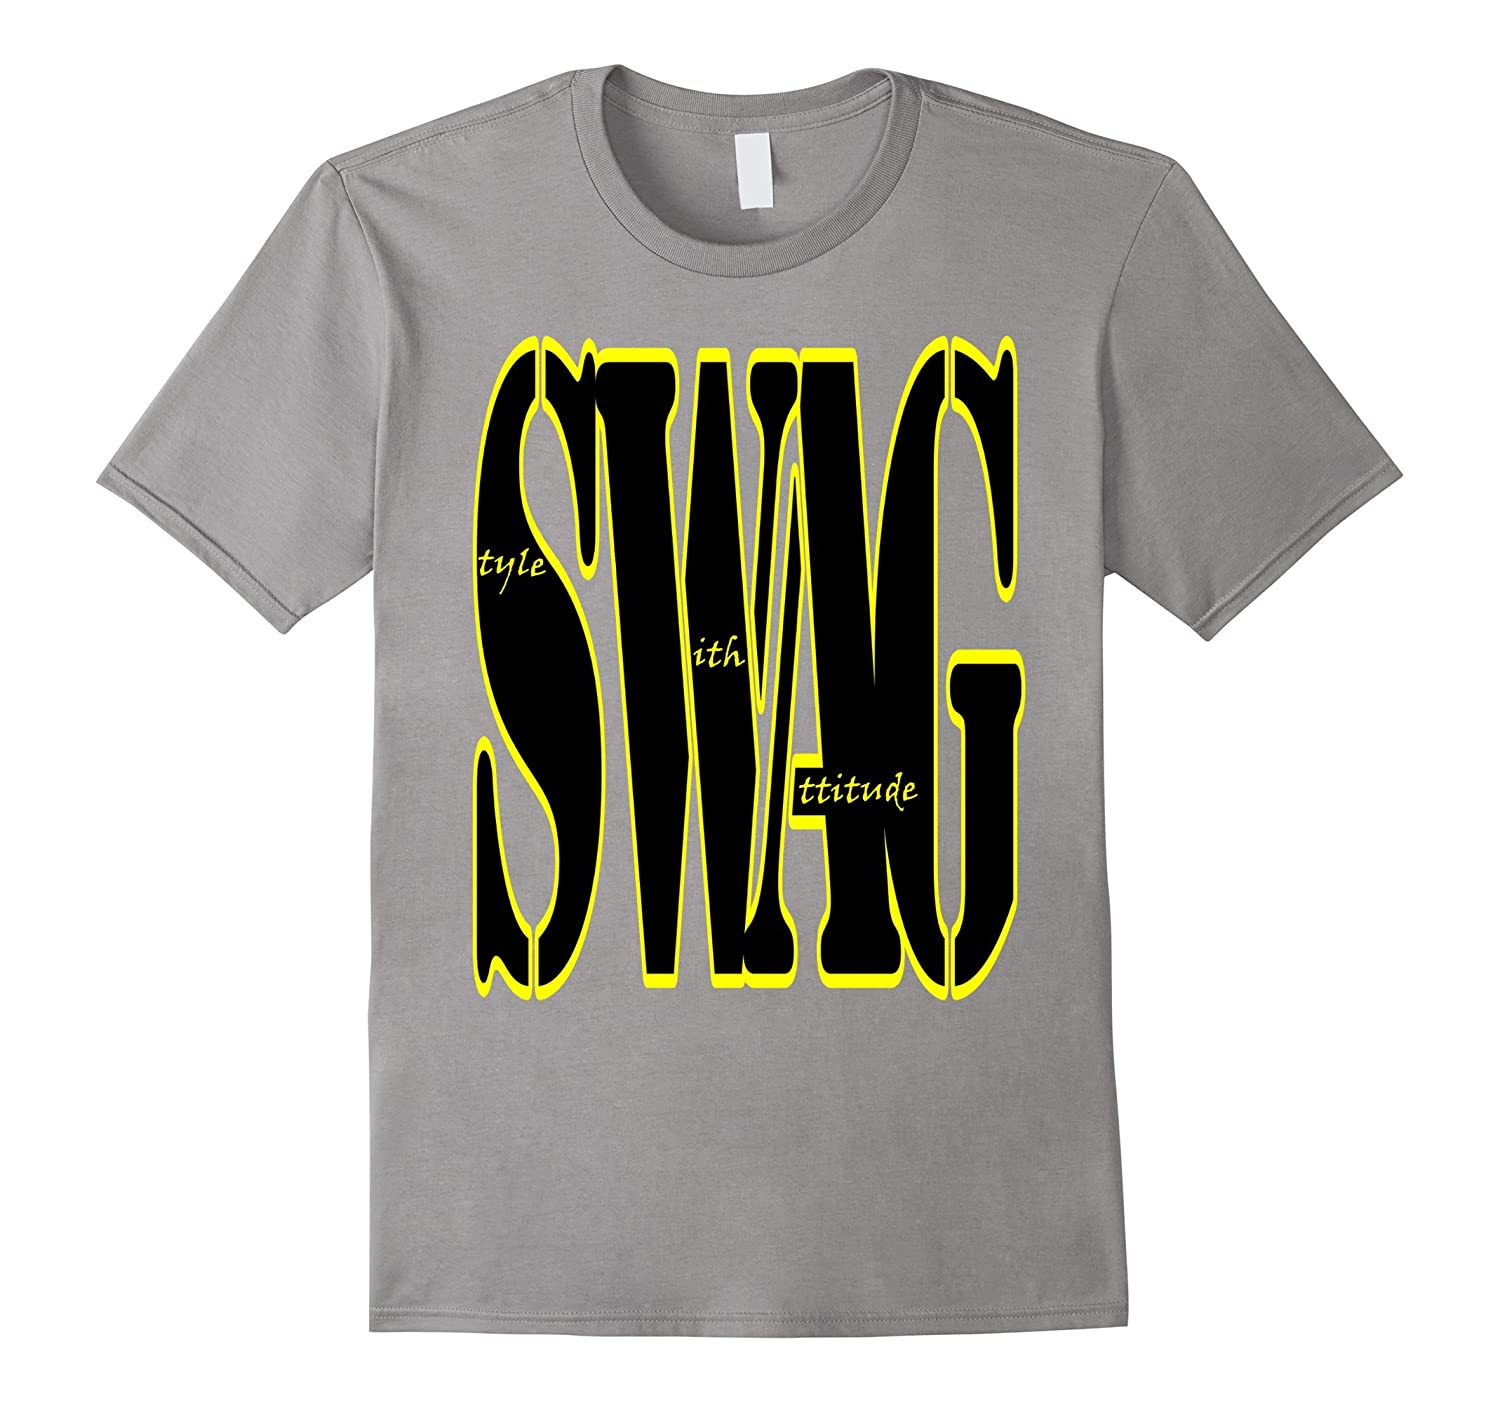 SWAG-Style With Attitude G T-Shirt-PL